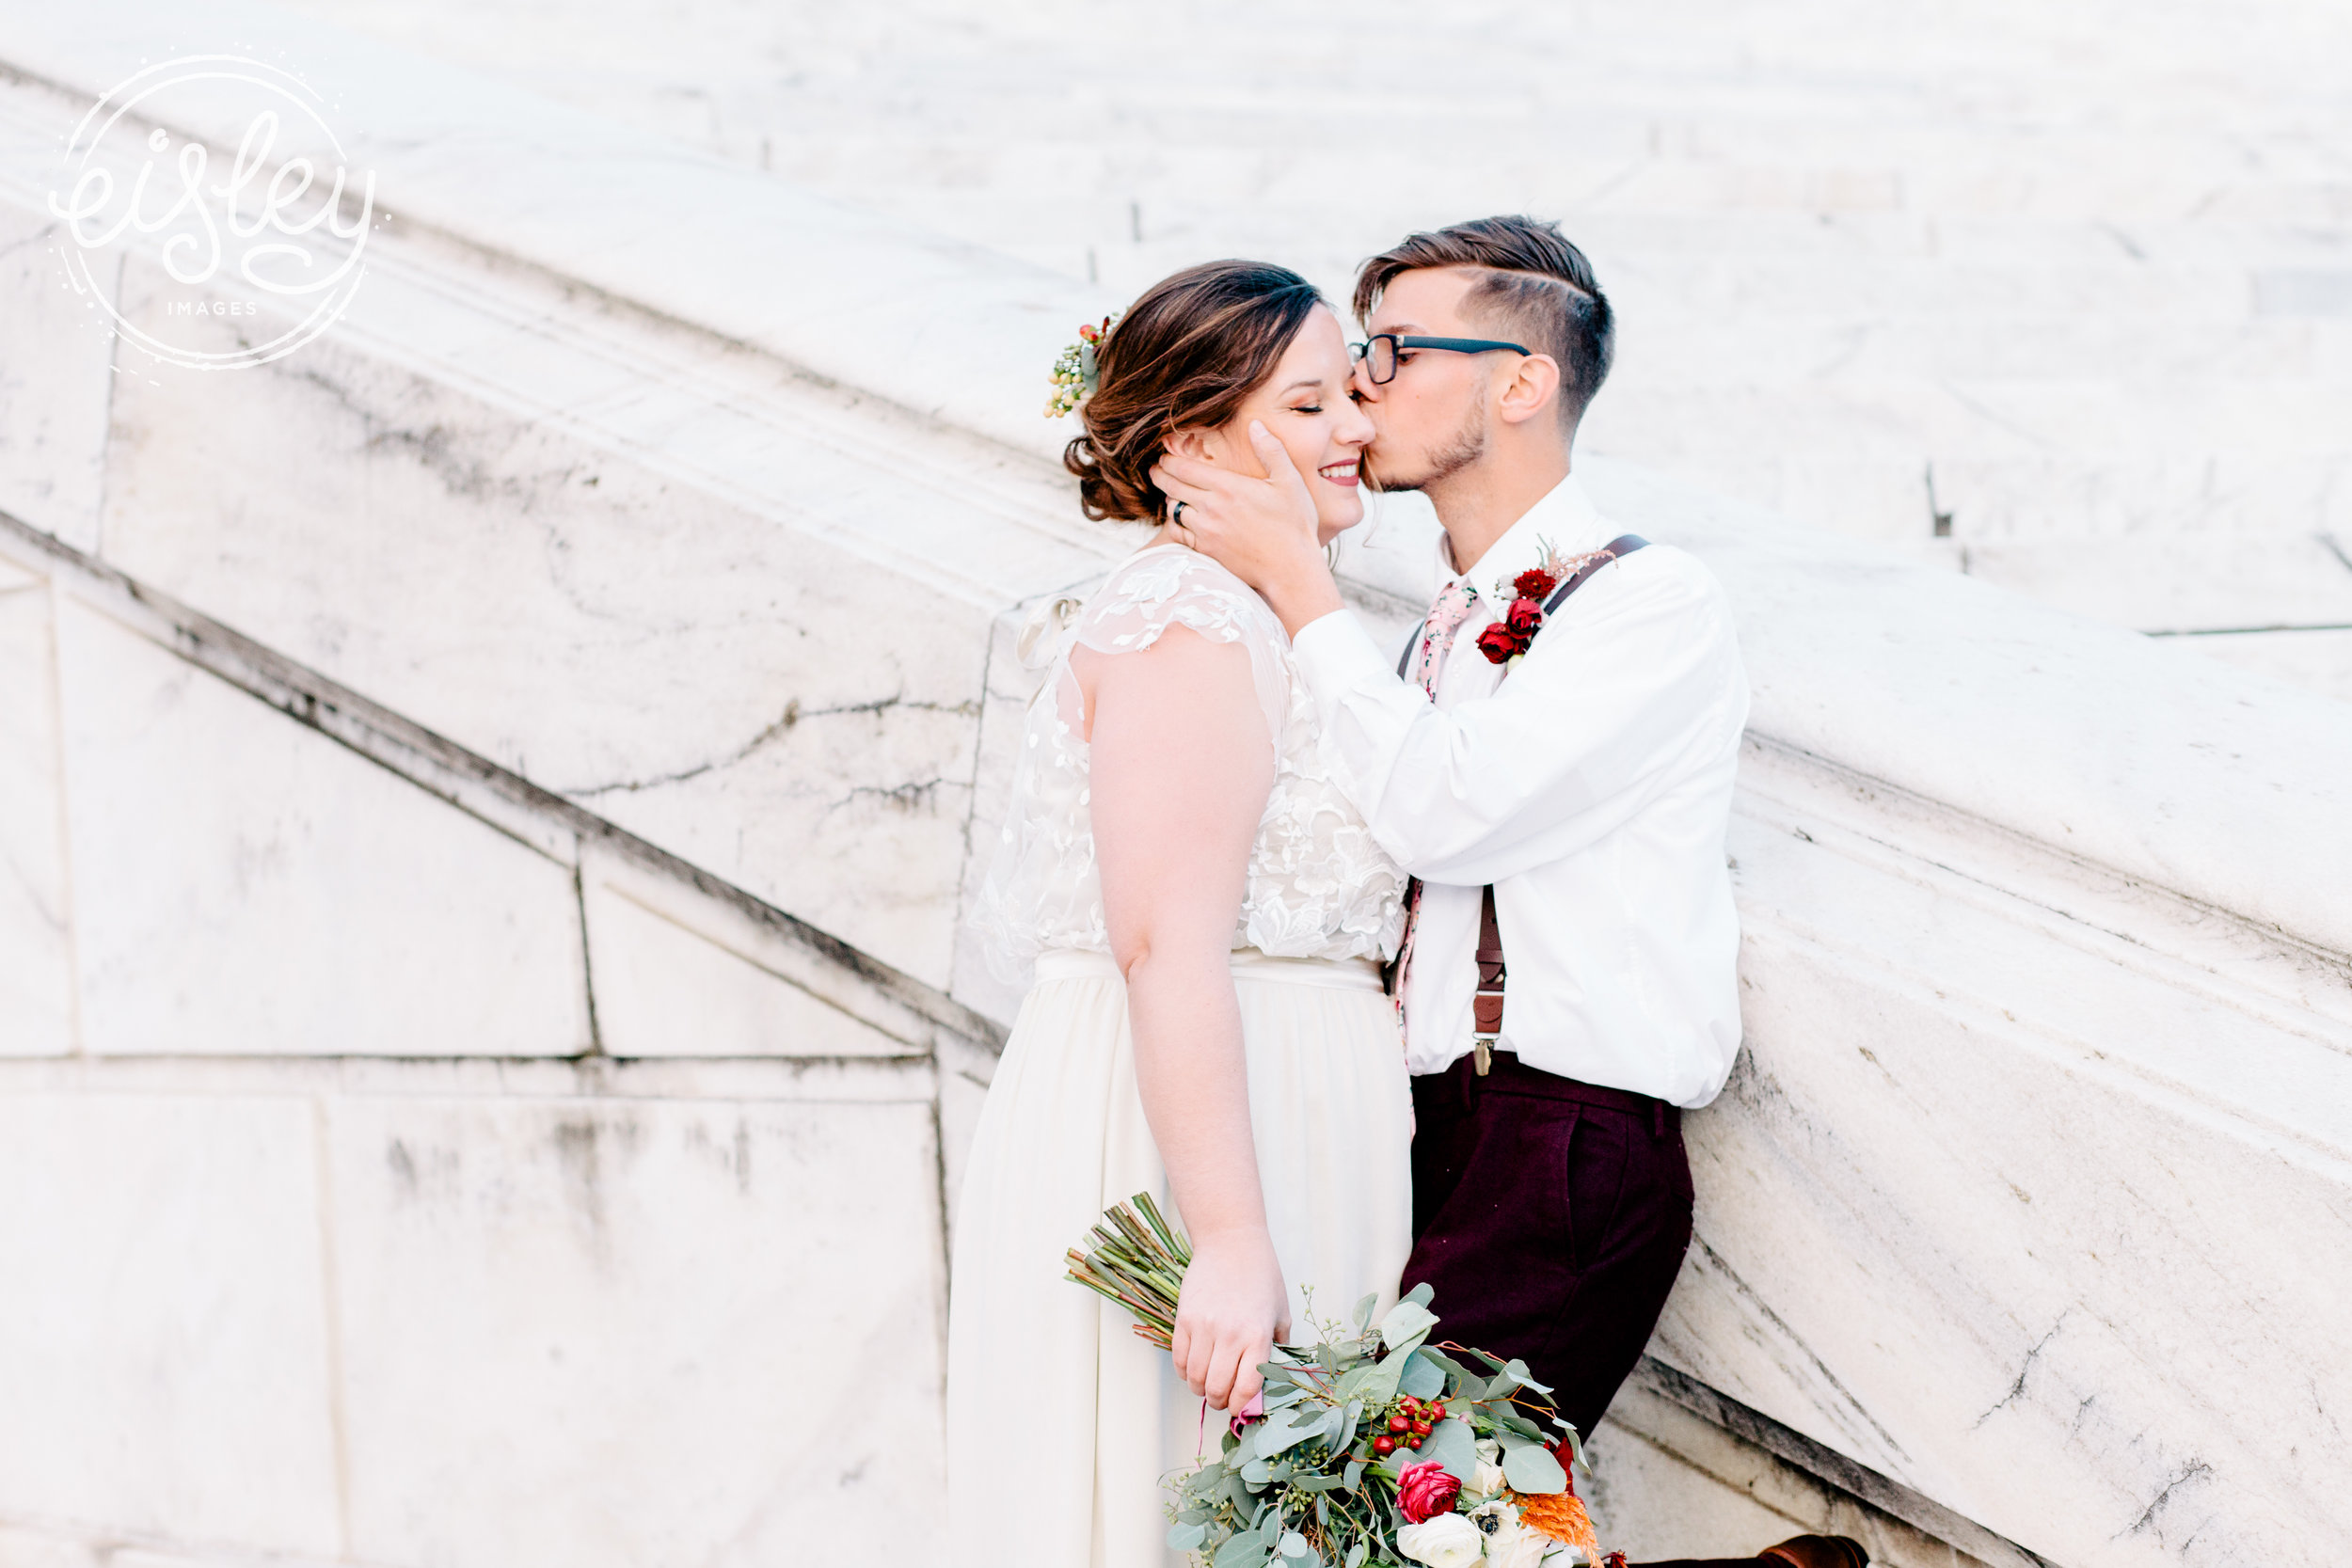 Olivia + Tyler at the Rhode Island State House following their ceremony at Gloria Dei Lutheran Church (Providence, RI)